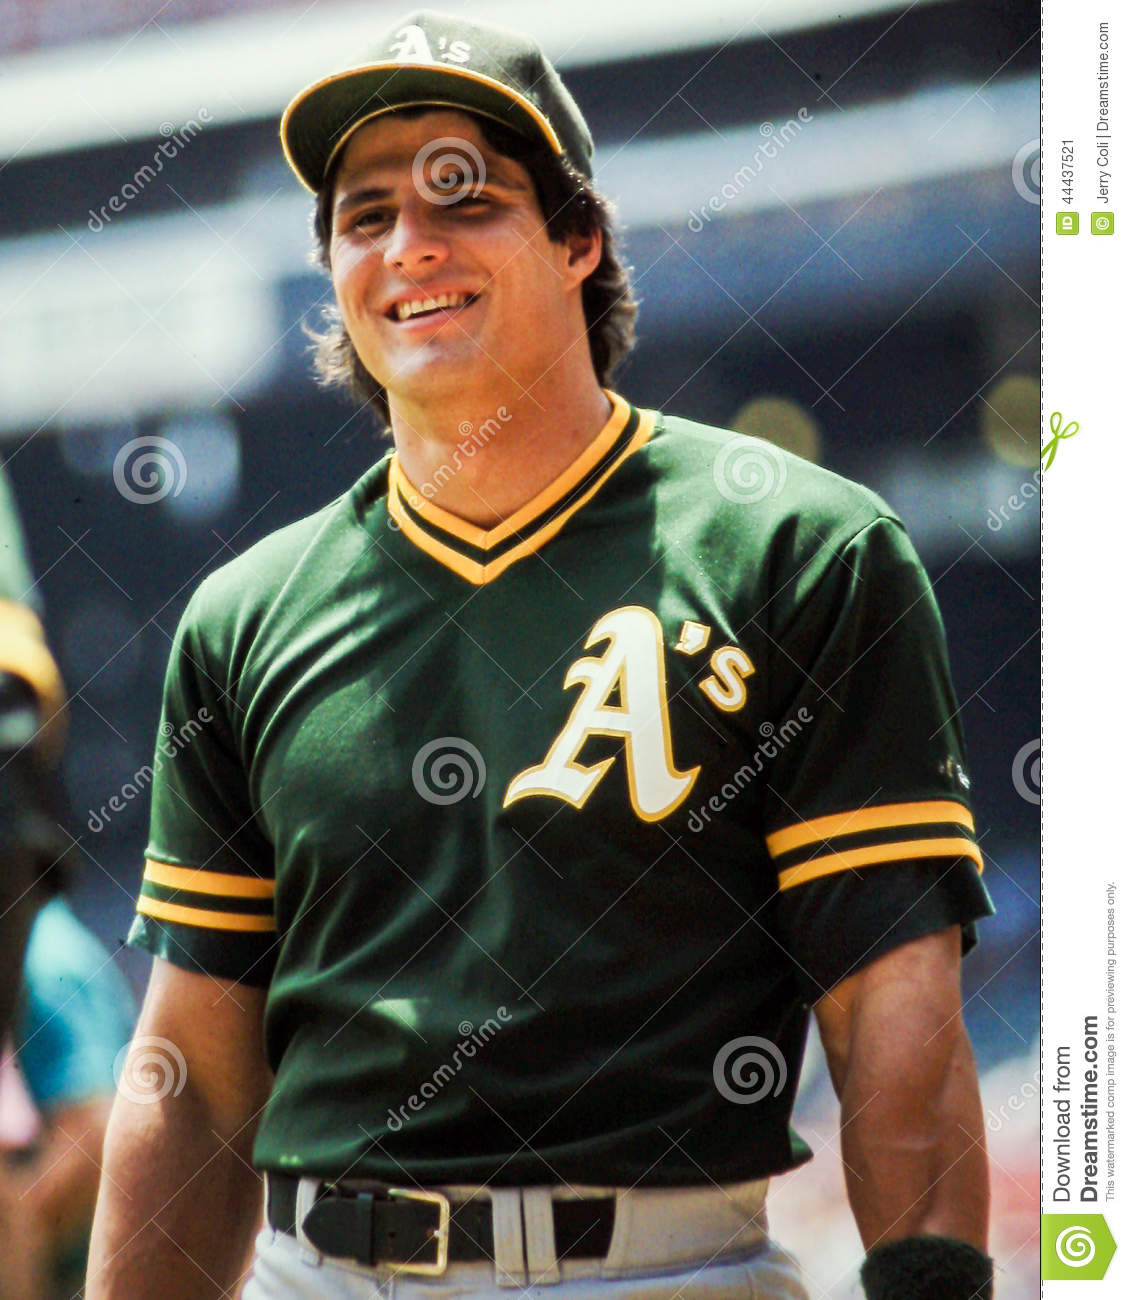 buy popular 72ae3 43460 Jose Canseco, Oakland A's editorial photo. Image of canseco ...